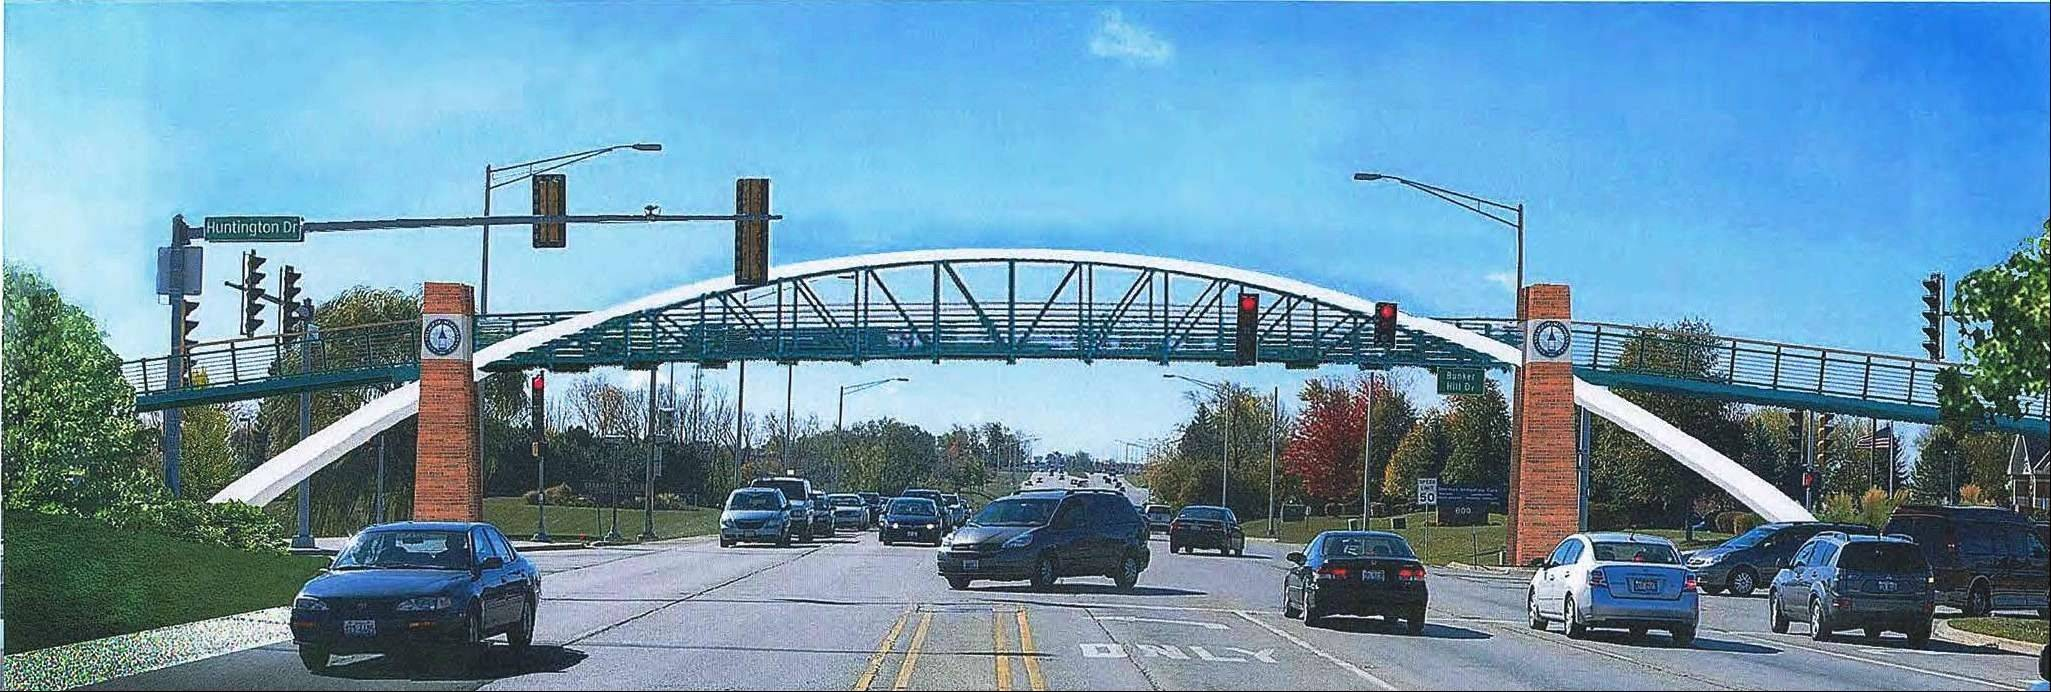 The $3.1 million pedestrian bridge that will eventually cross over Randall Road at Bunker Hill Drive in Algonquin will eventually look like this. Tuesday, the village's committee of the whole selected this design from 10 others.